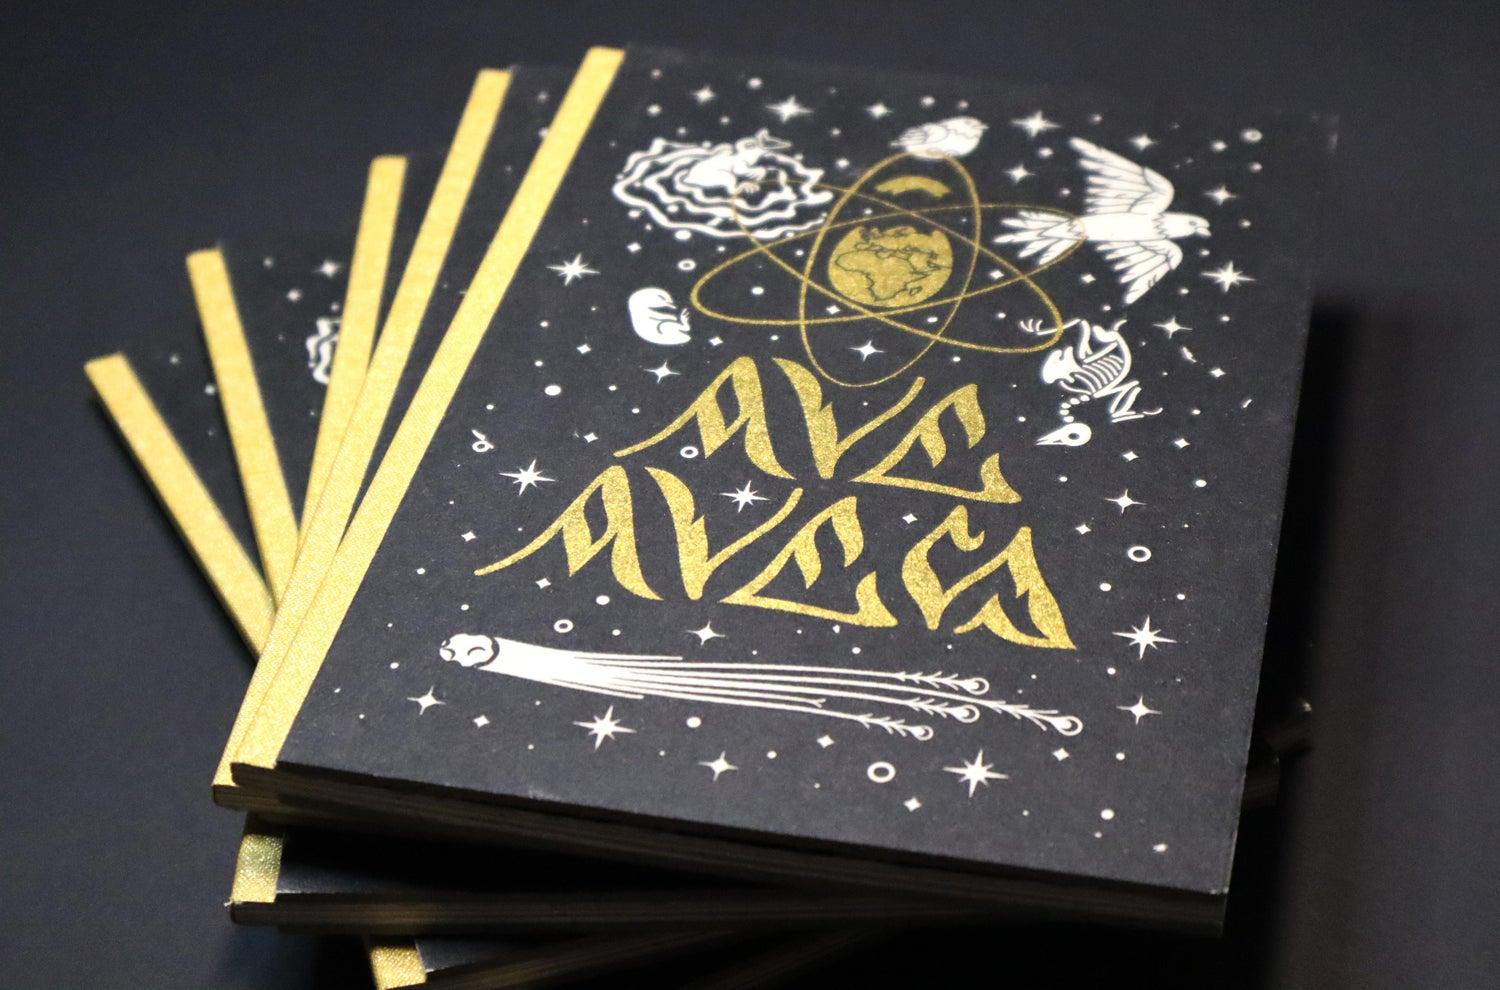 Image of Ave Aves book